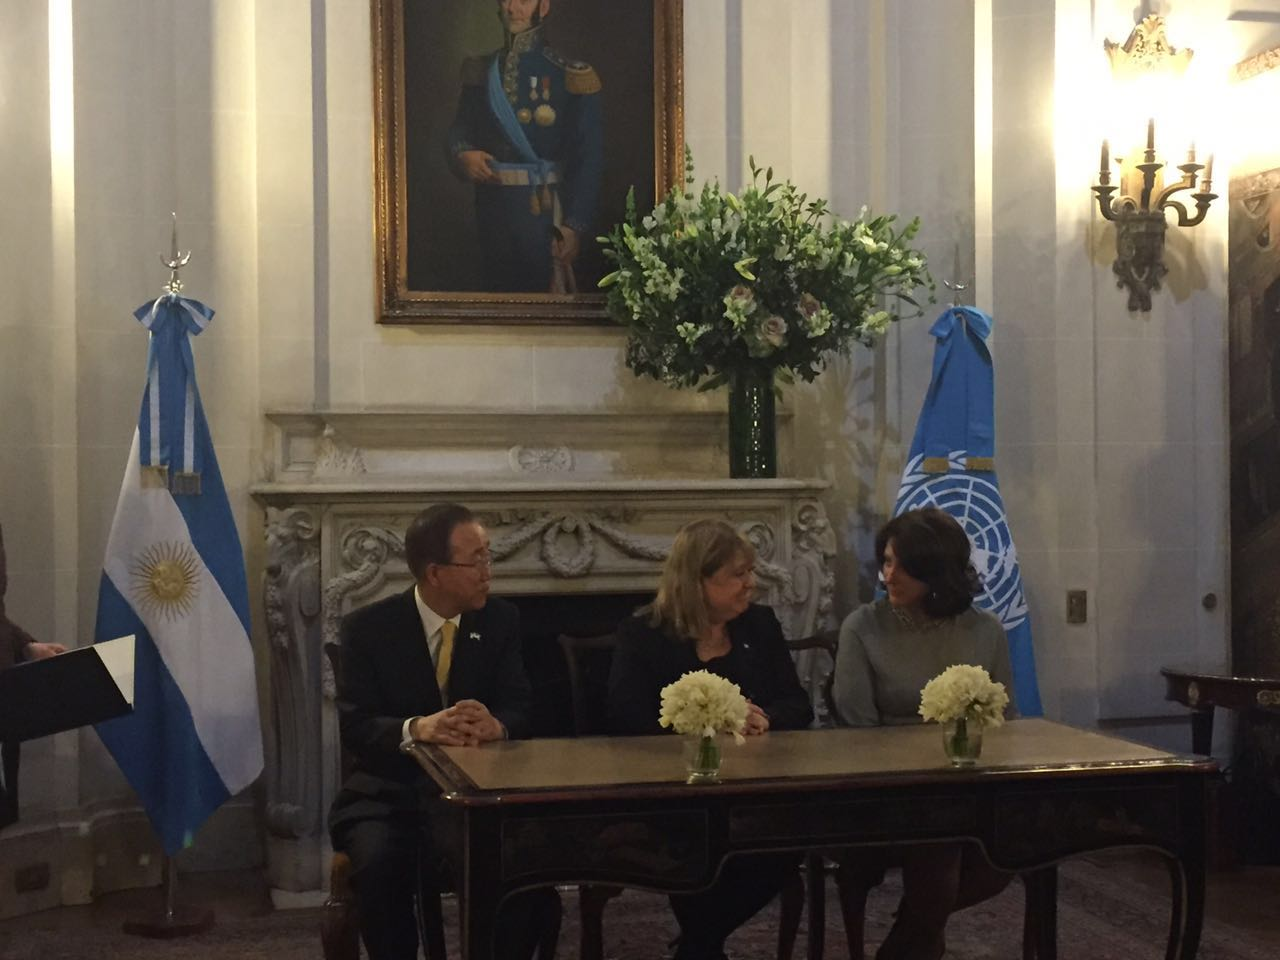 The subscription was made between the Chancellor of the Republic of Argentina, Susana Malcorra and UN Women Regional Director, Luiza Carvalho, with the presence of UN Secretary-General, Ban Ki-moon